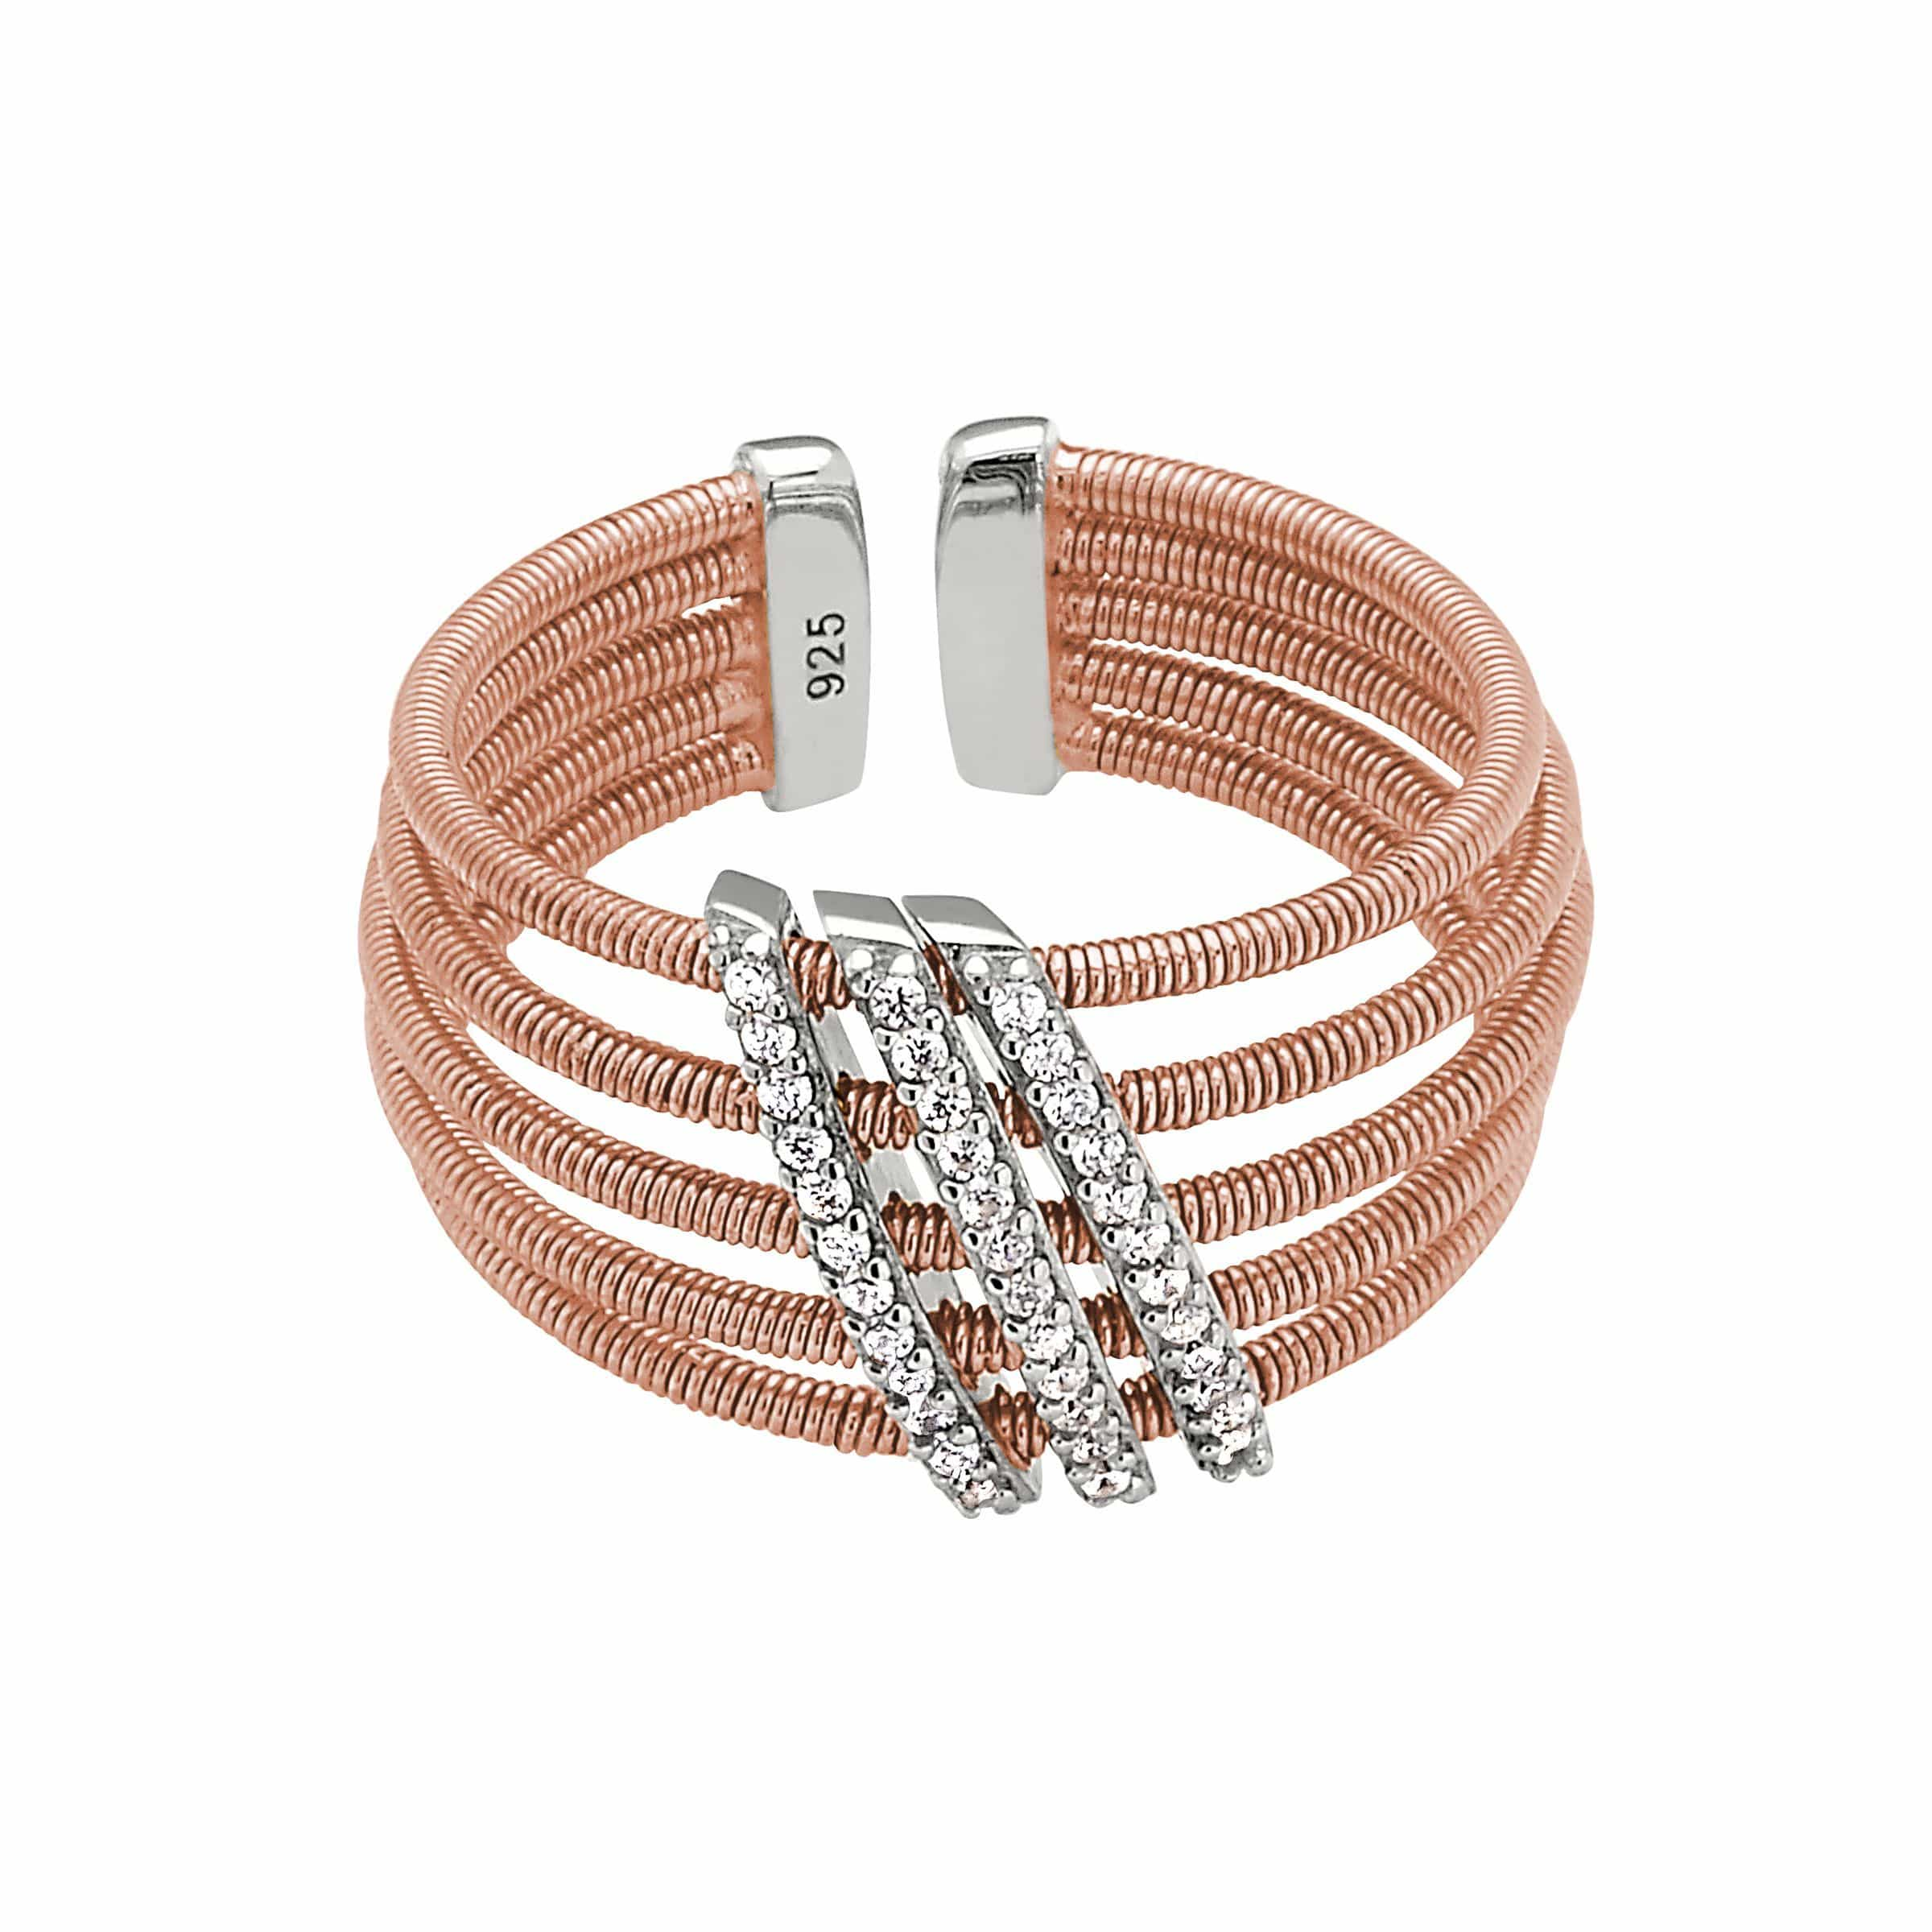 Rose Gold Finish Sterling Silver Multi Cable Cuff Ring - LL7034R-RG/RH-Kelly Waters-Renee Taylor Gallery